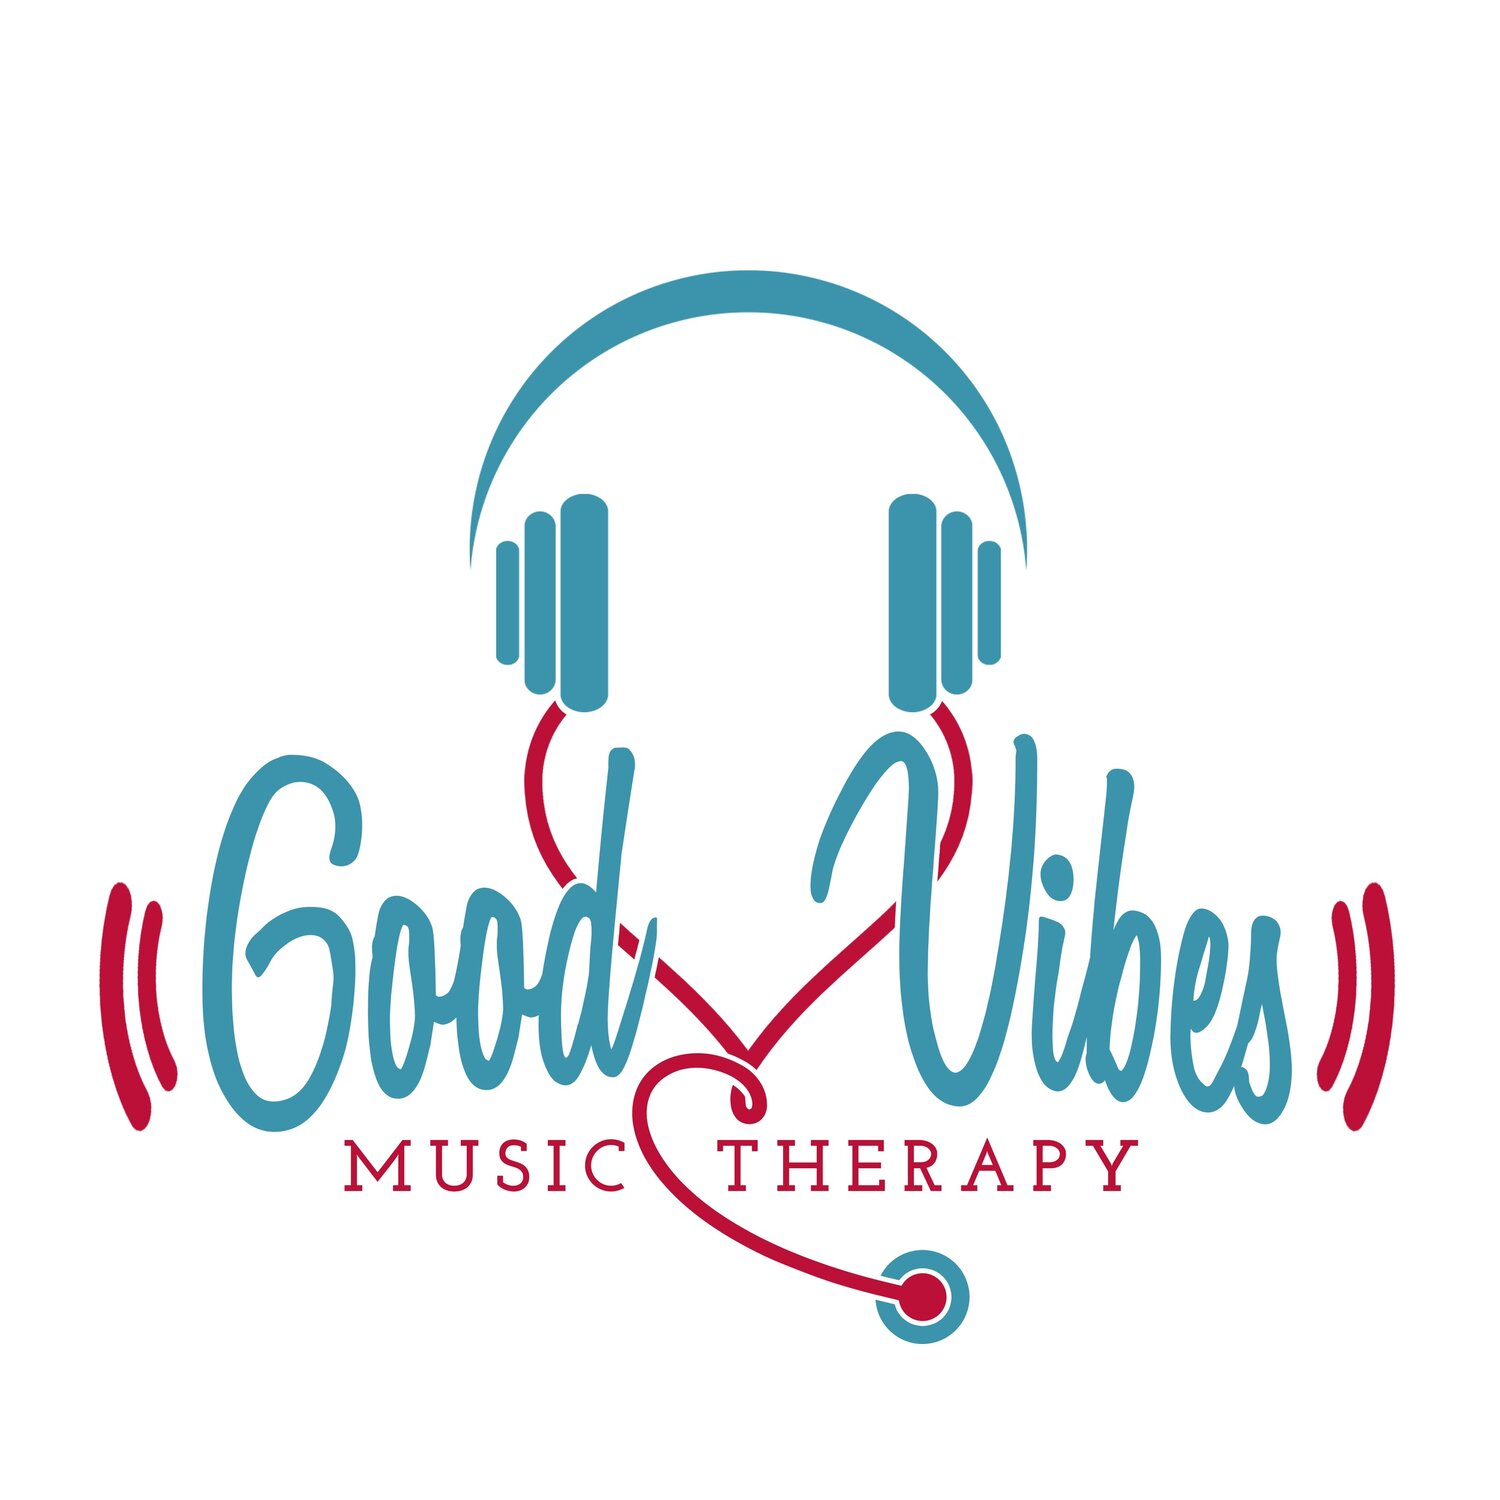 Good Vibes Music Therapy